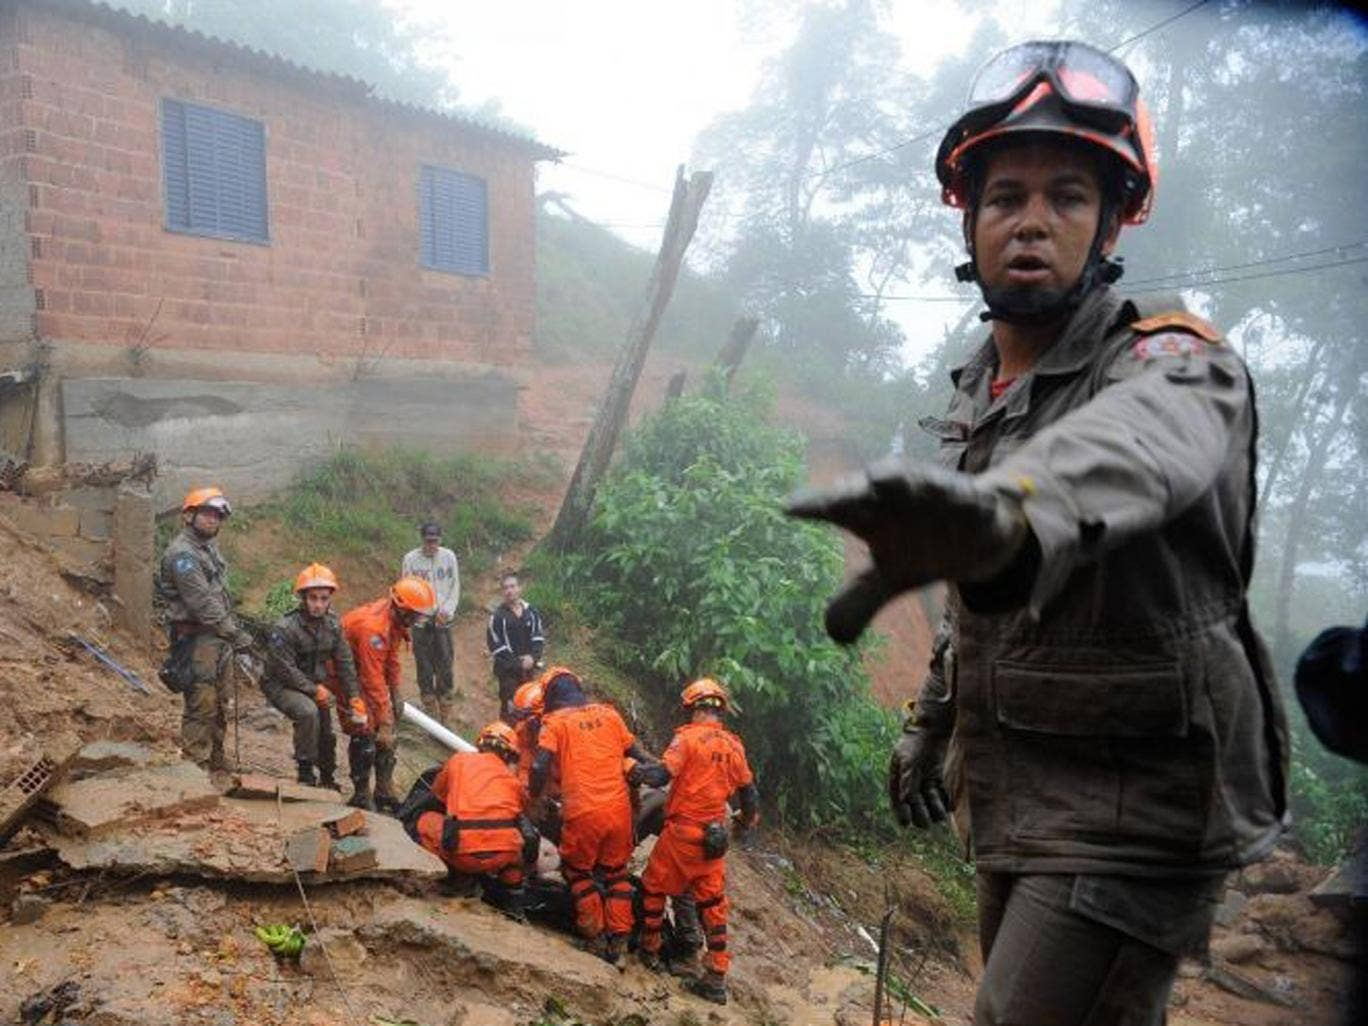 A rescue worker gestures as his colleagues carry the body of a victim of a mudslide in Petropolis, near Rio de Janeiro